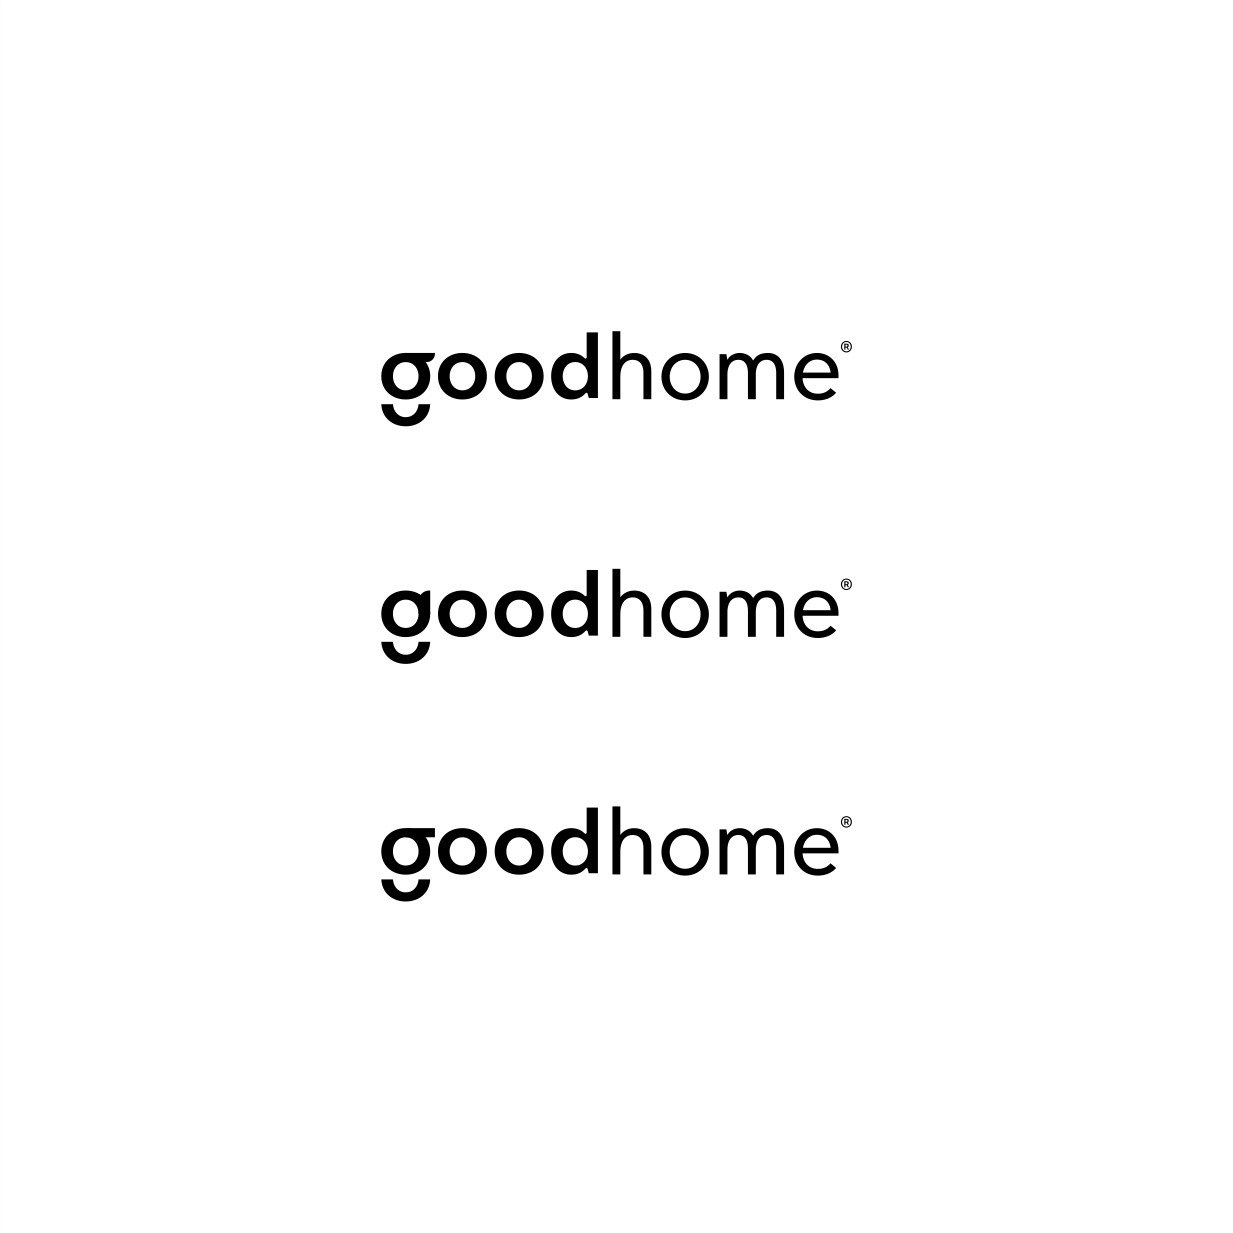 Design a hipster logo for an American home and houseware brand